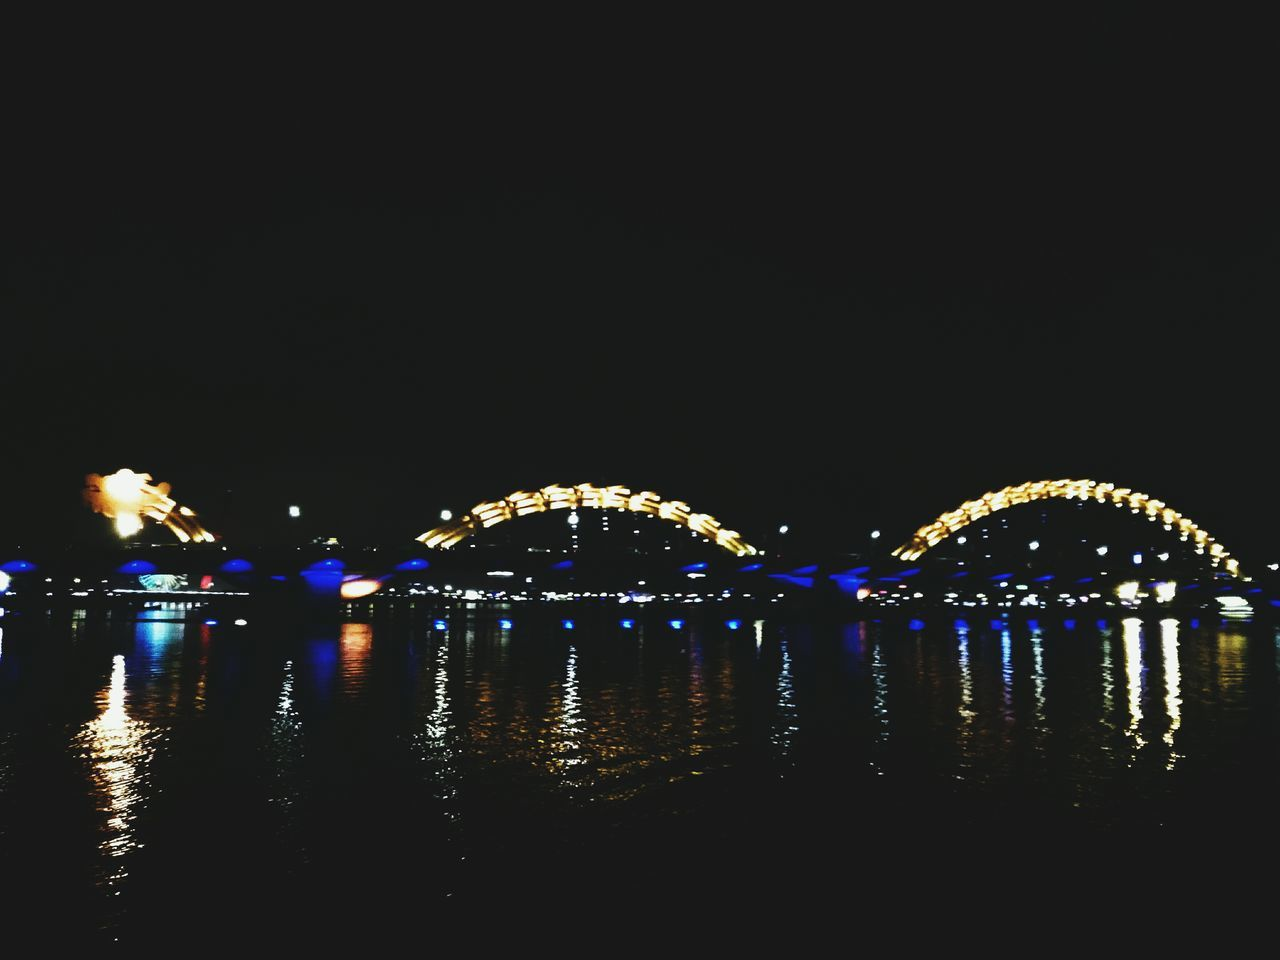 night, illuminated, water, reflection, copy space, outdoors, clear sky, waterfront, no people, sky, architecture, nature, city